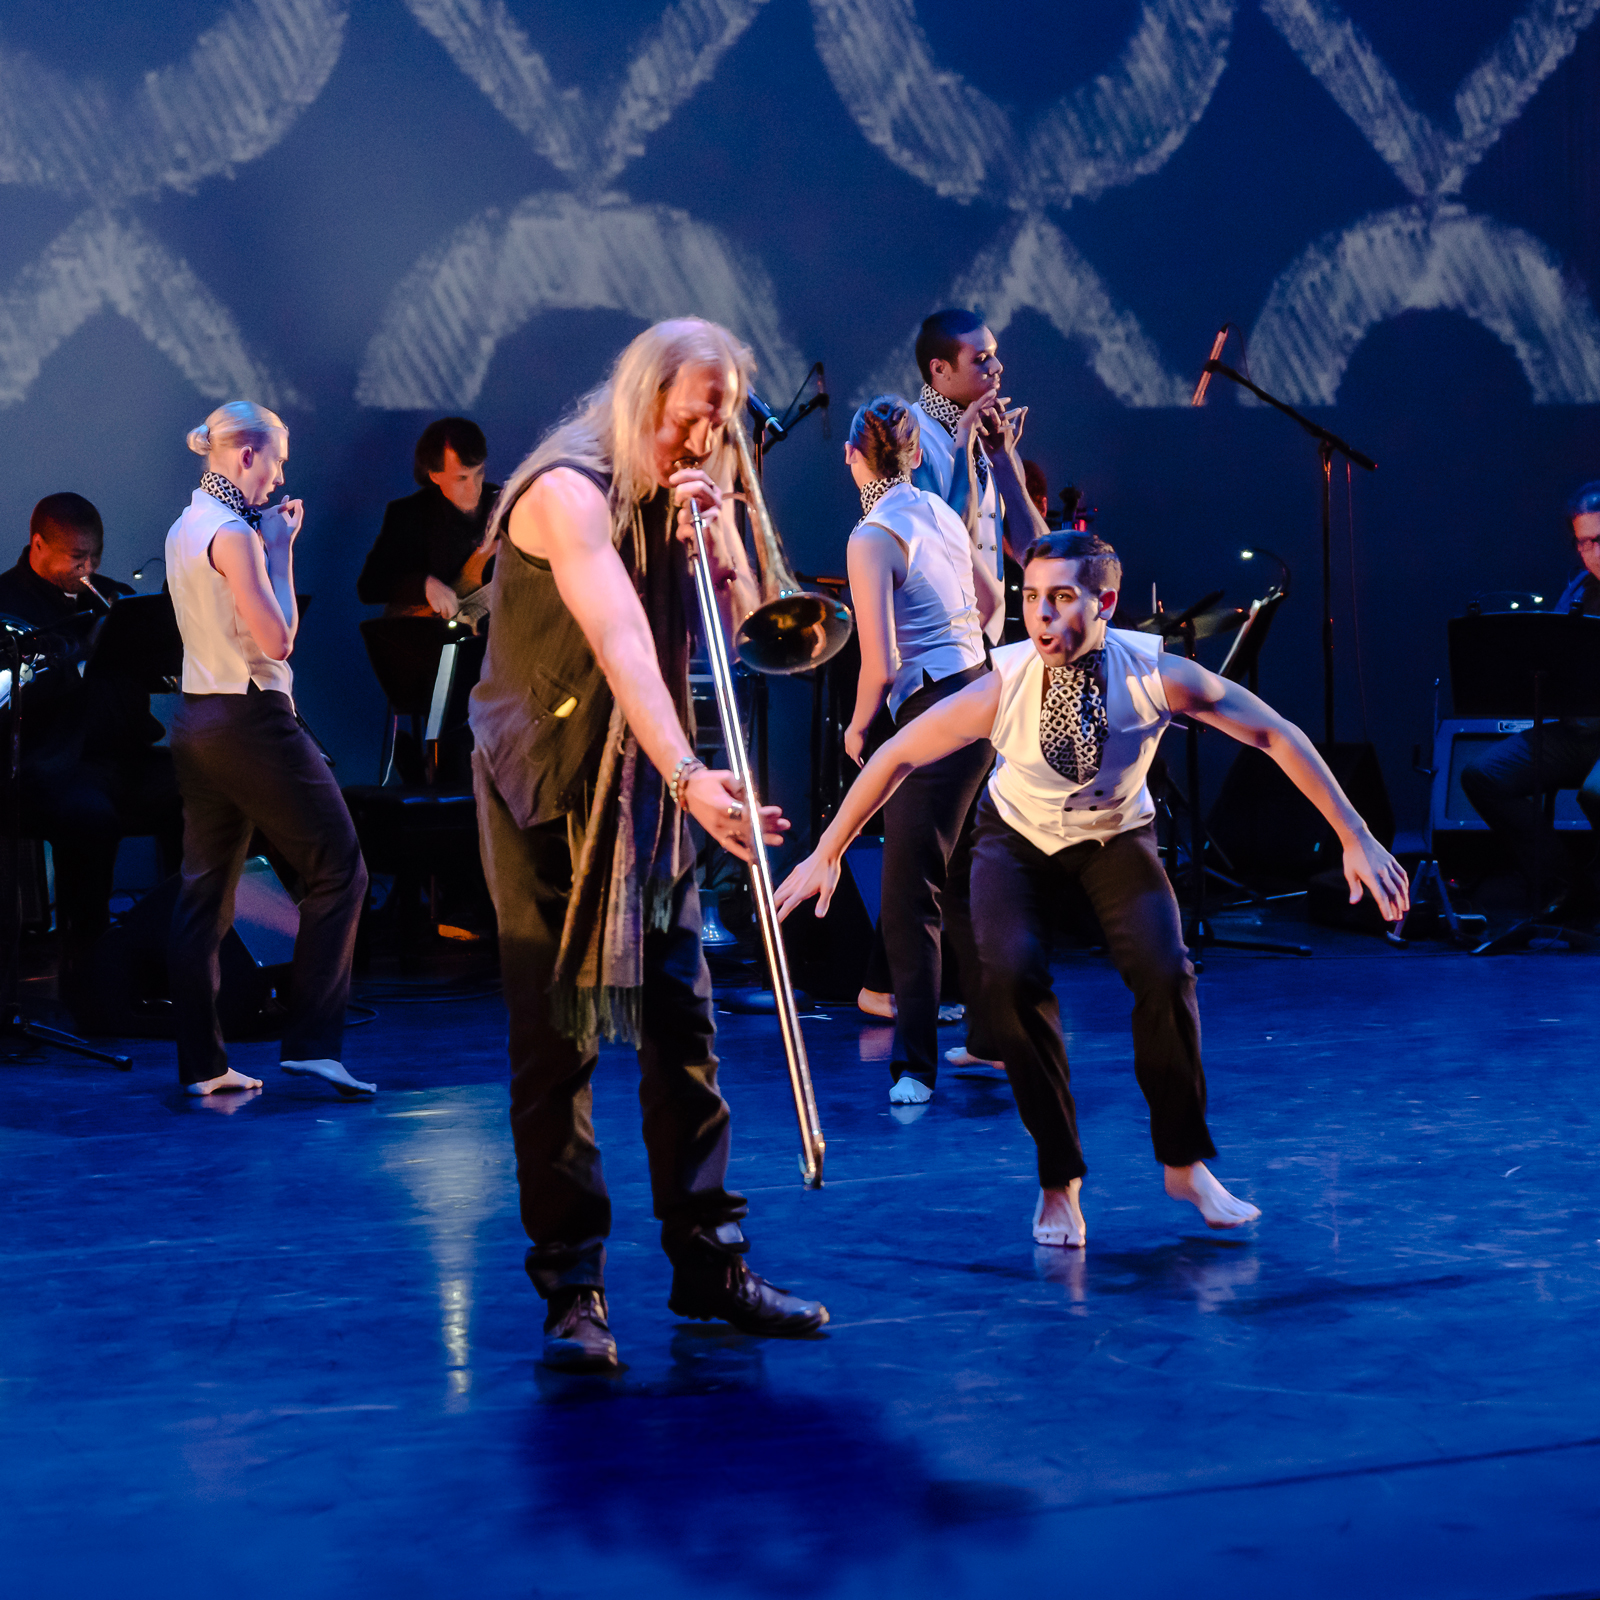 Here Comes Treble by 2017 CRDT Choreography Fellow Taylor Mitchell and Dan Hesler in concert, October 2017. Pictured: musicians Pharez Whitted, Stu Greenspan and Joe Cerqua*; dancers Quincie Bean, Jordan Colovos and Richard Pena* * artists at forefront (Photo by Dan Kasberger)